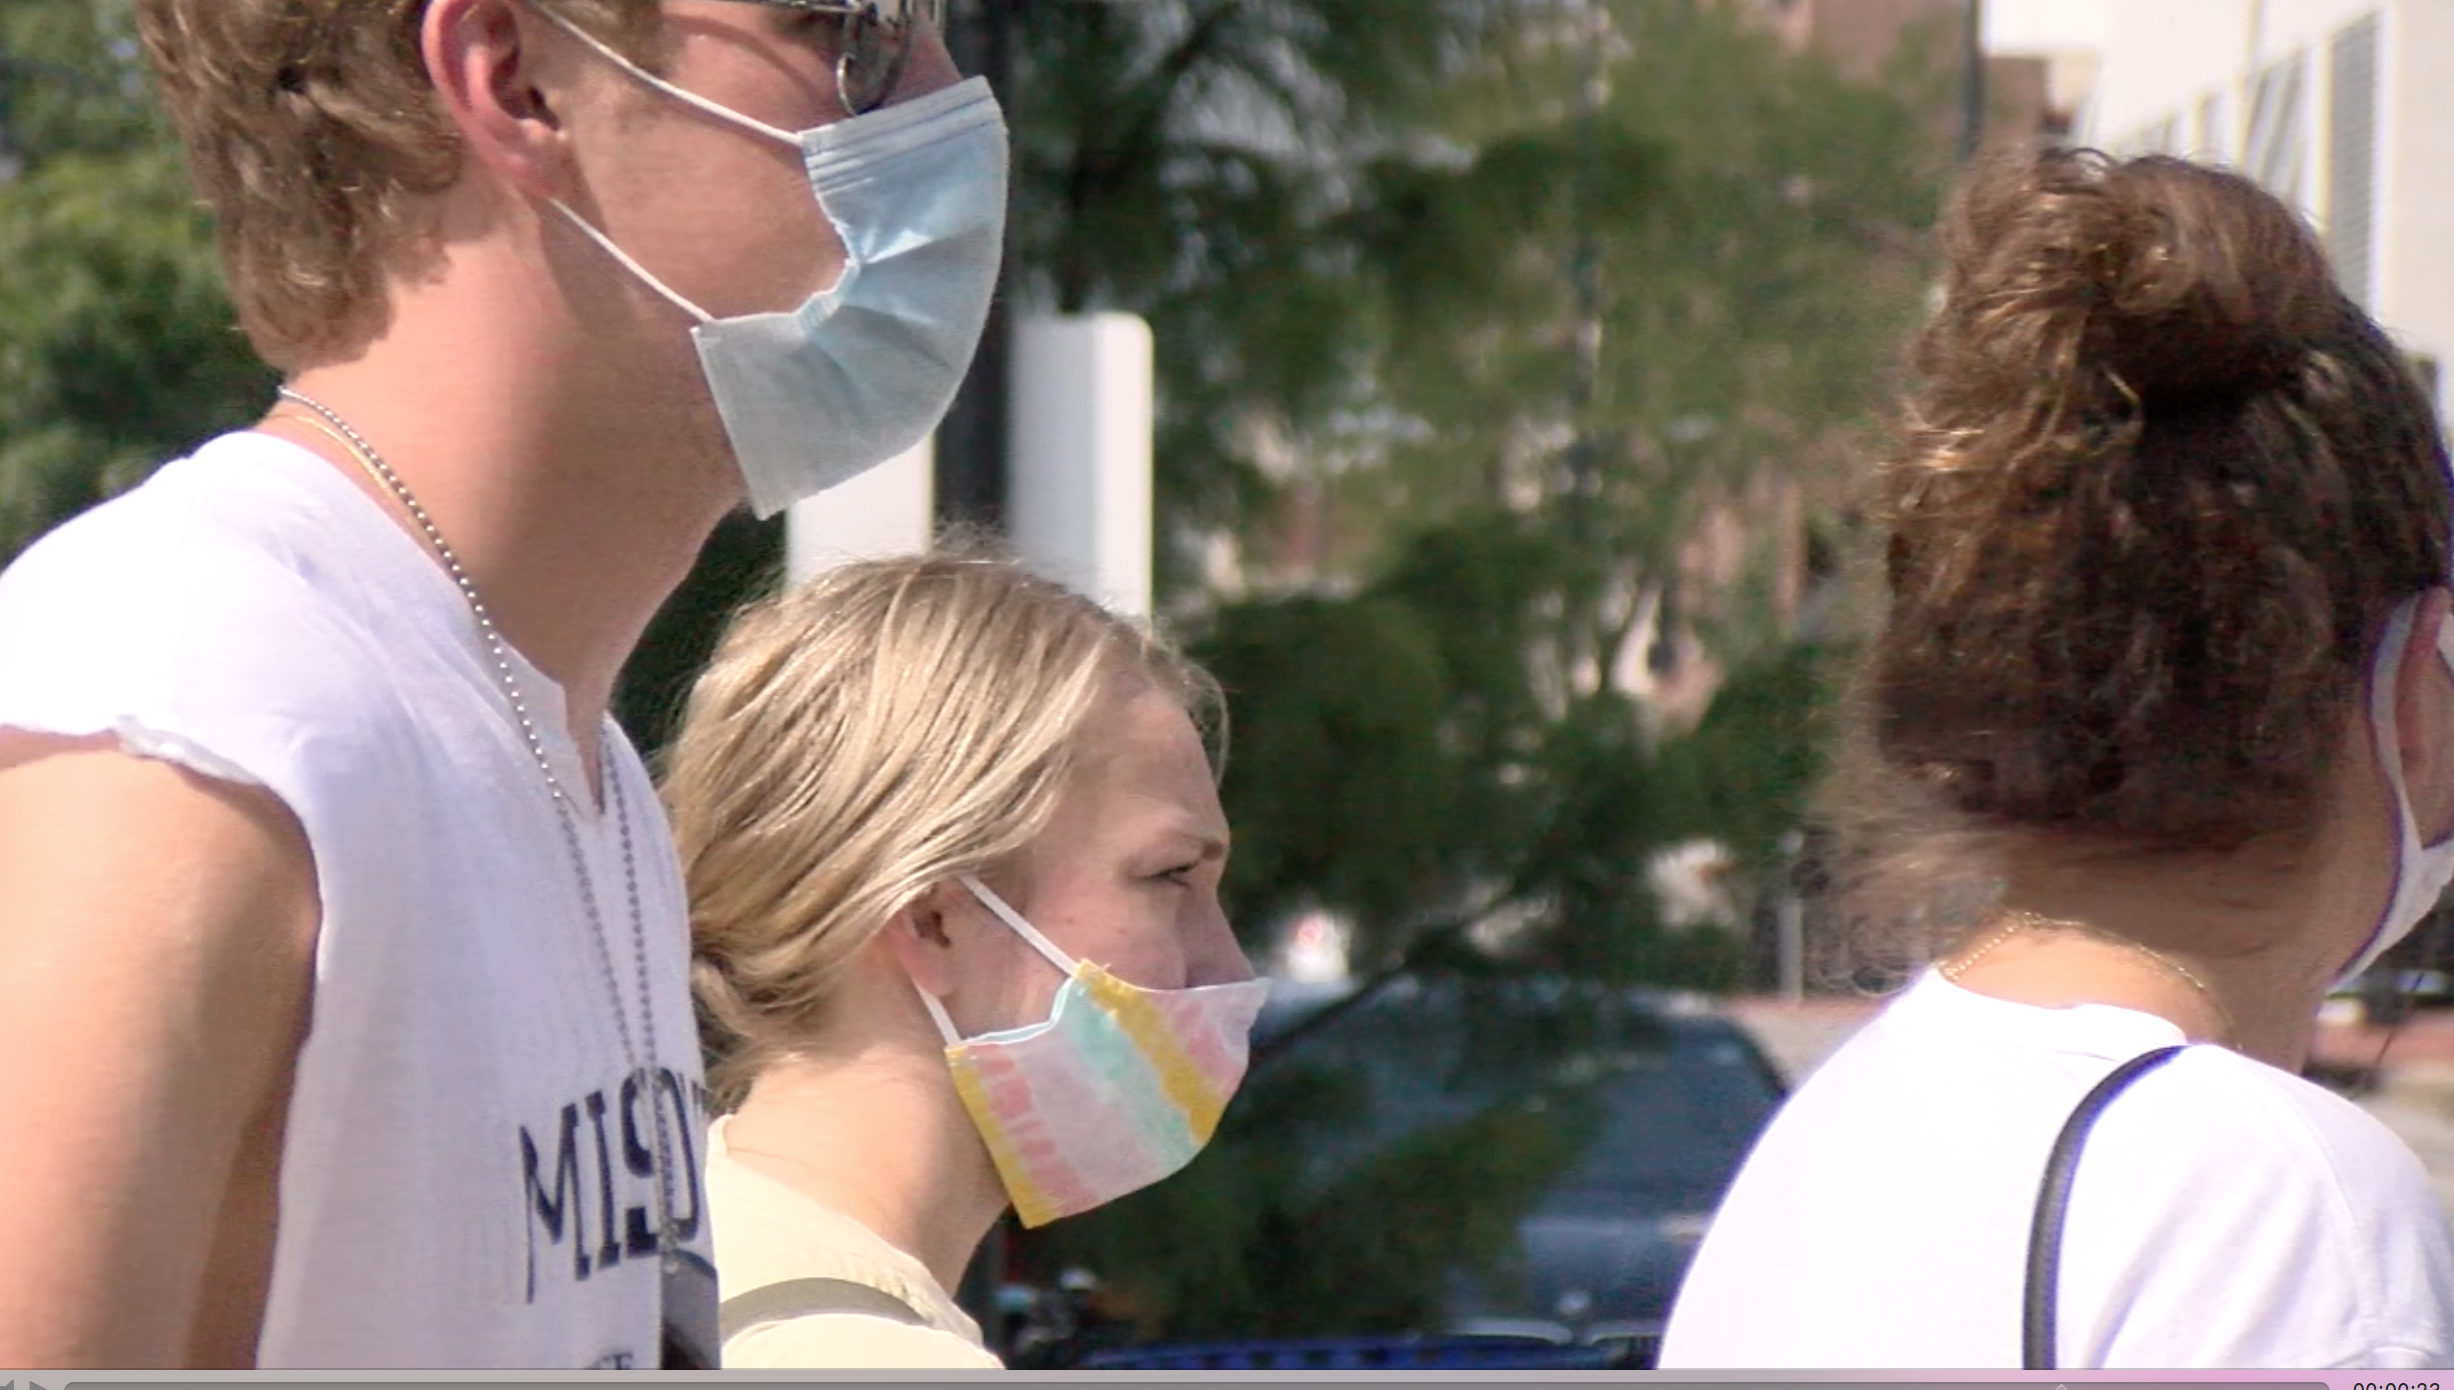 University of Missouri students wearing masks on campus during the fall 2020 semester.